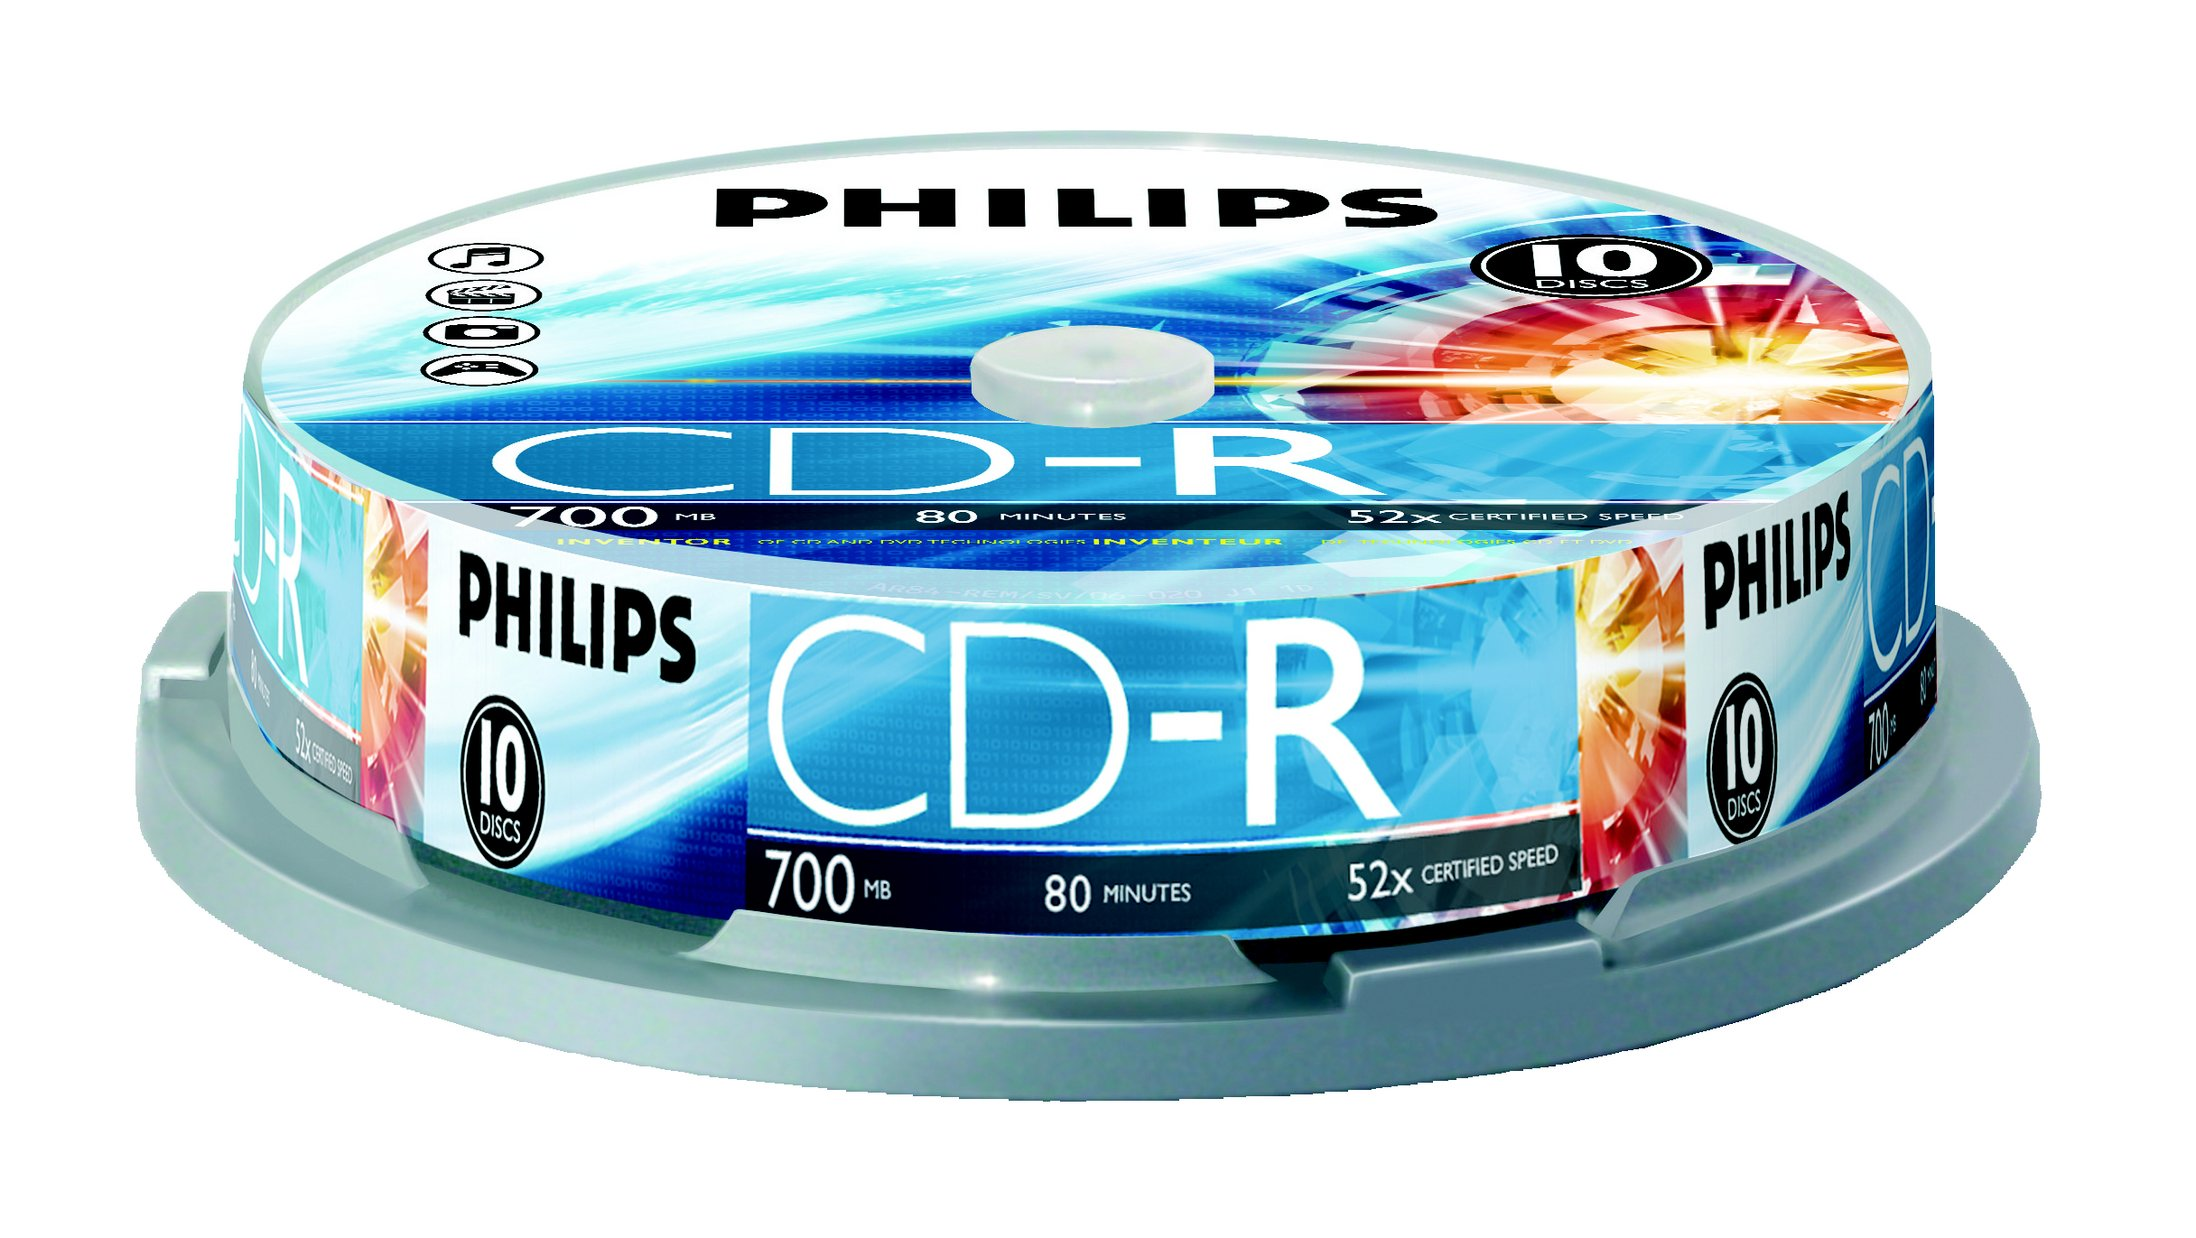 Philips 700 MB C-Dr 10Ct Spindle (CR7D5NP10/17) by Philips (Image #1)